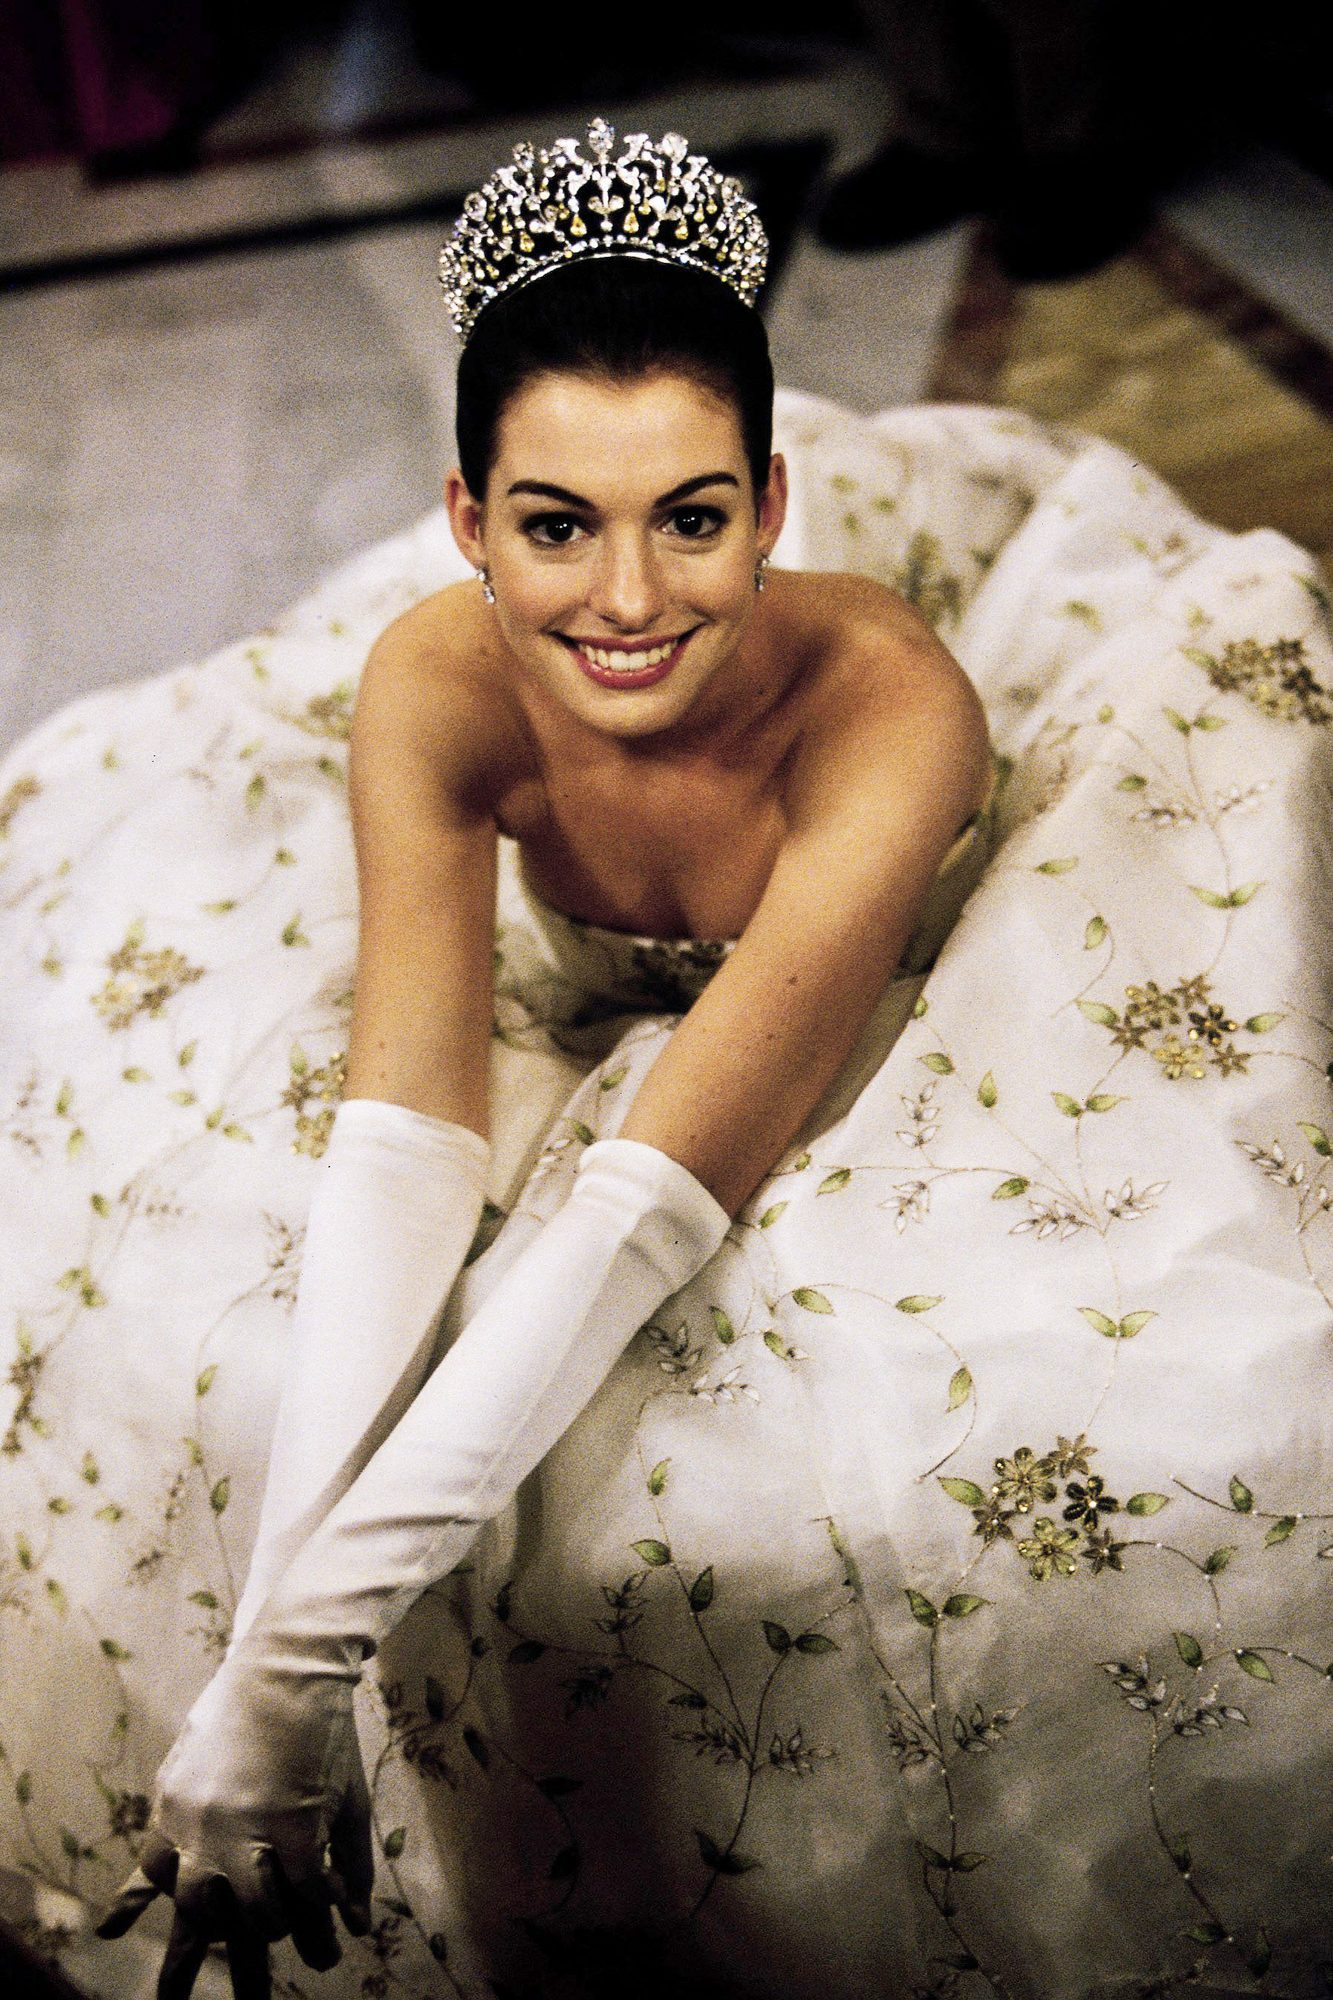 ANNE HATHAWAY THE PRINCESS DIARIES (2001)